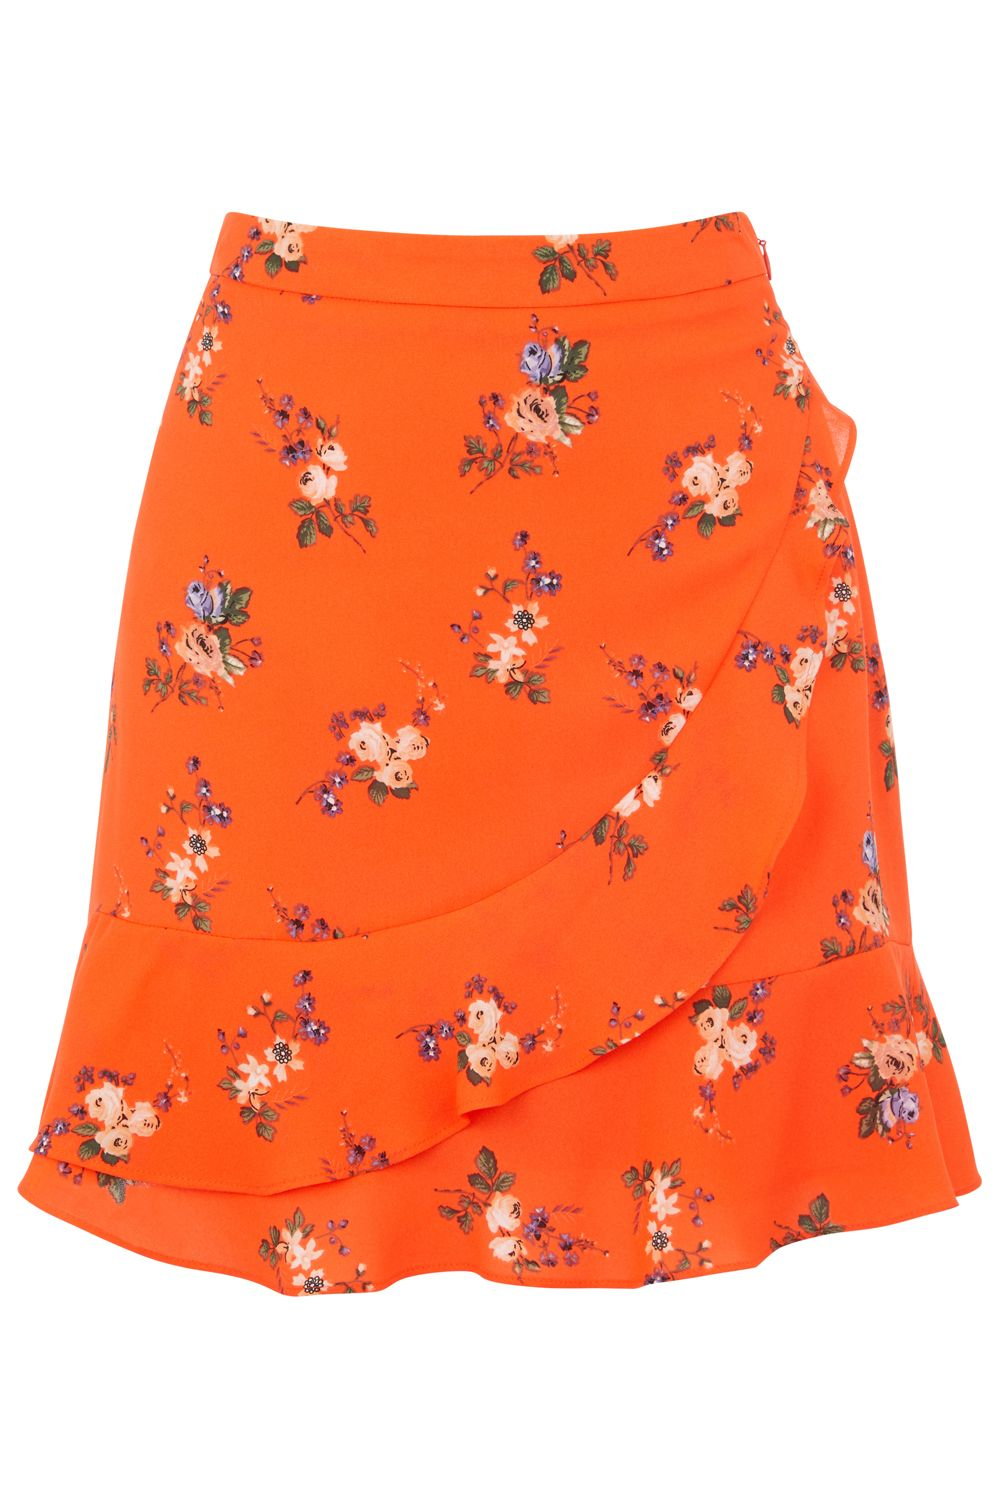 Oasis Bouquet Provence frill skirt, Multi-Coloured